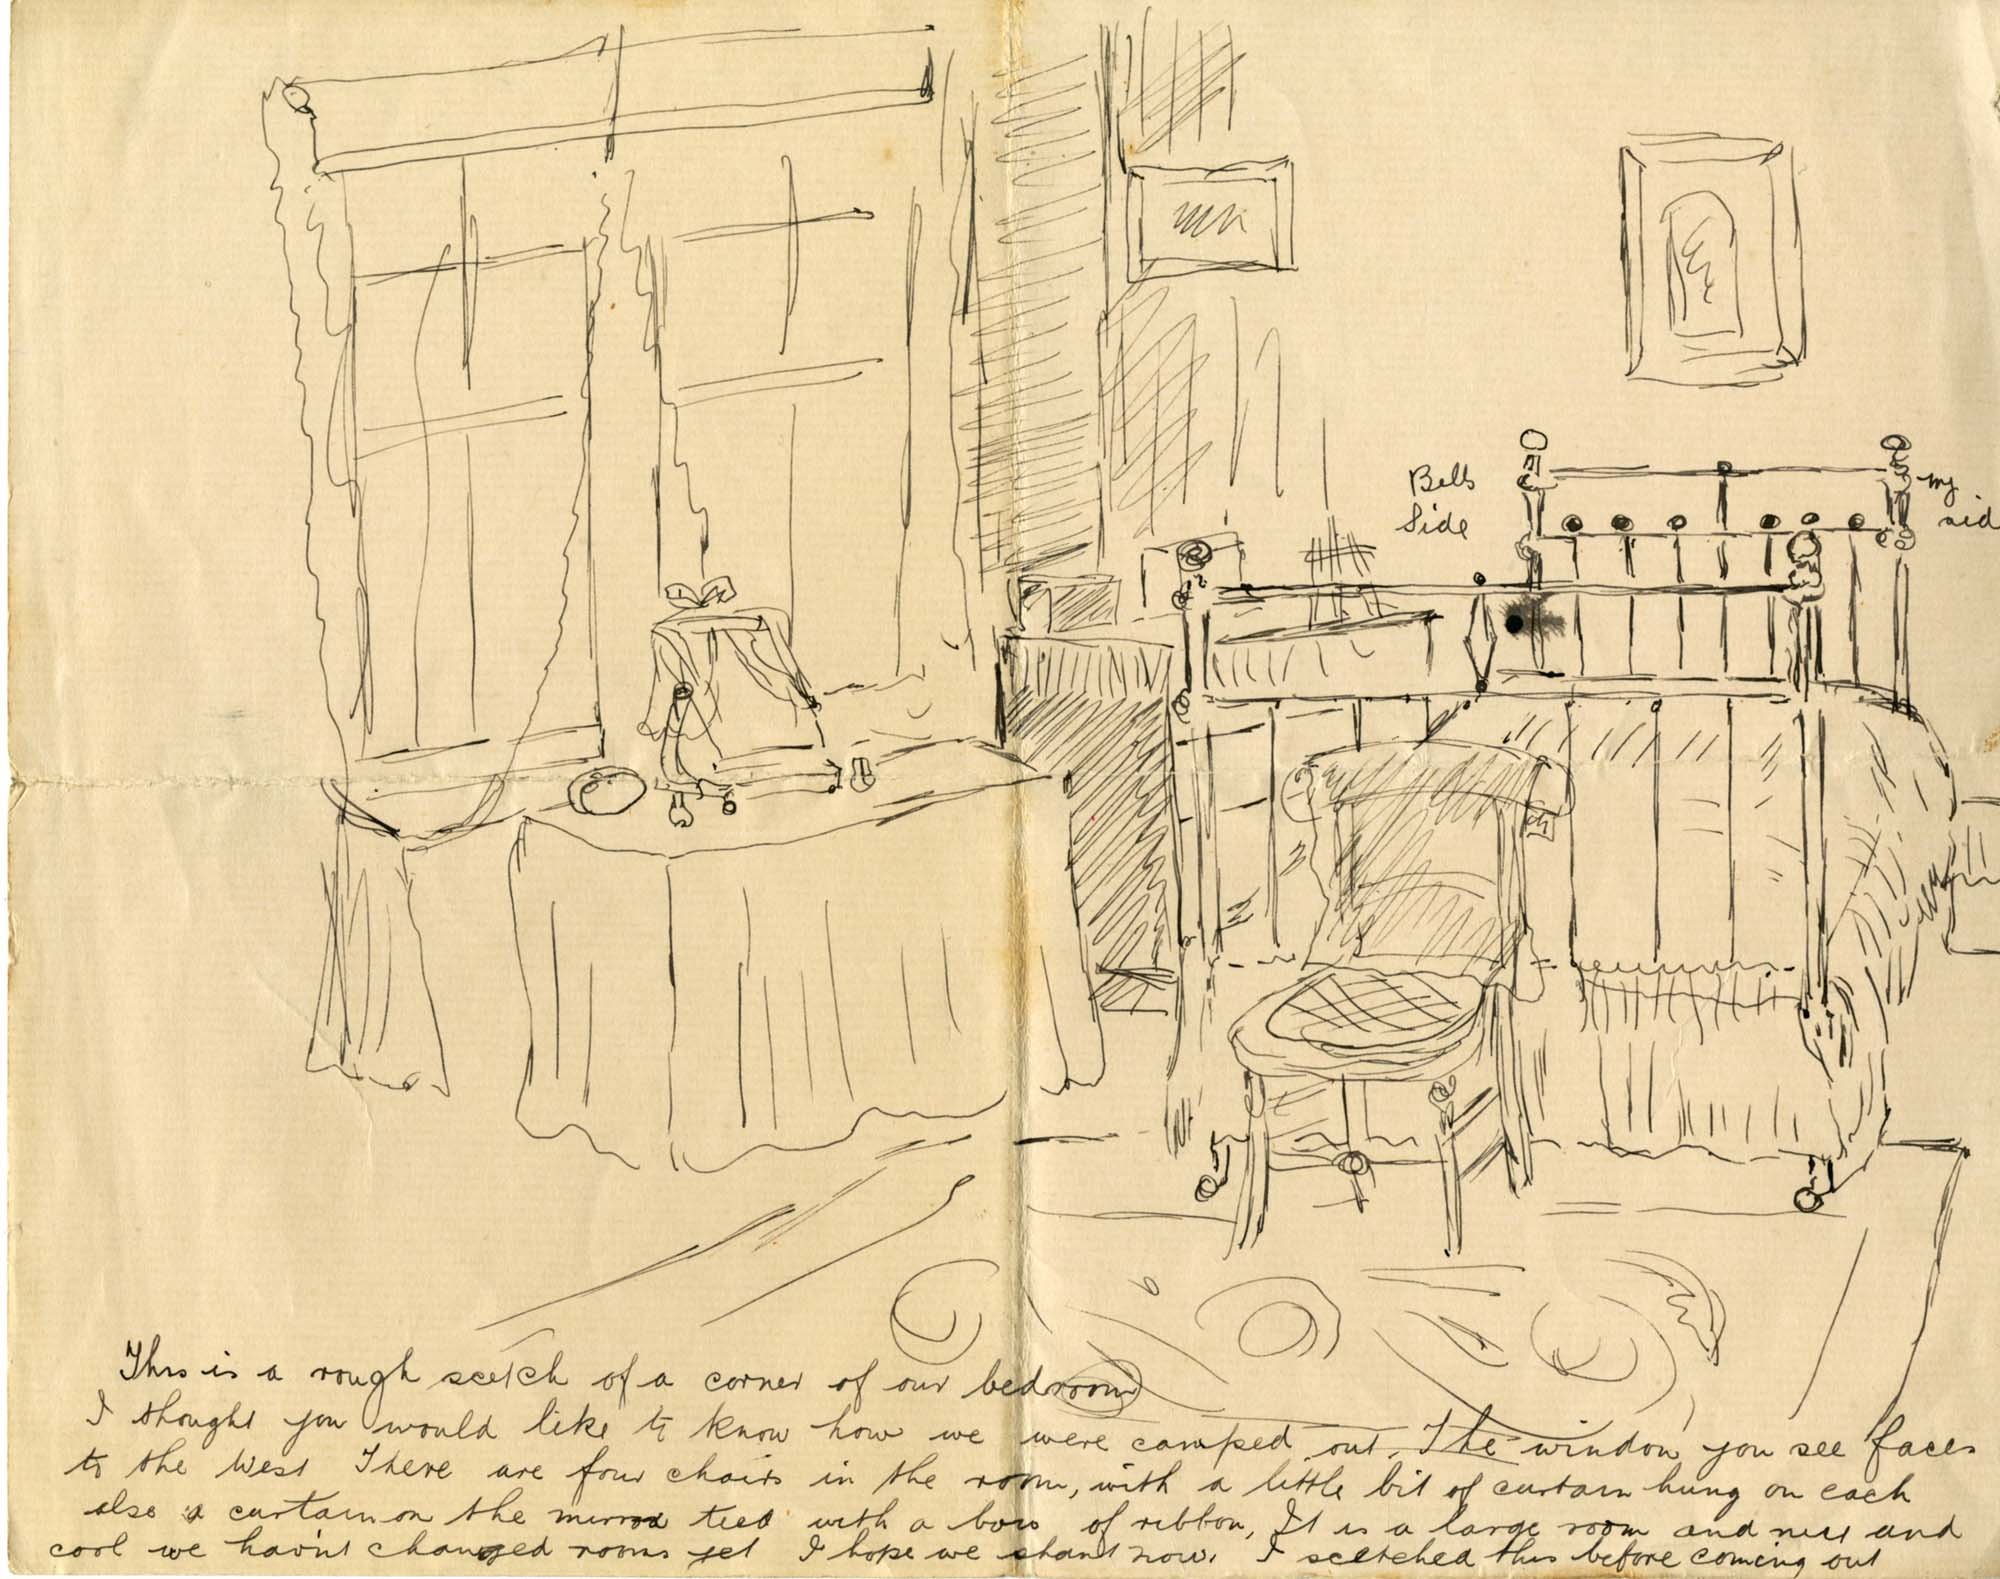 a drawing of a room with a bedstead and bedside table